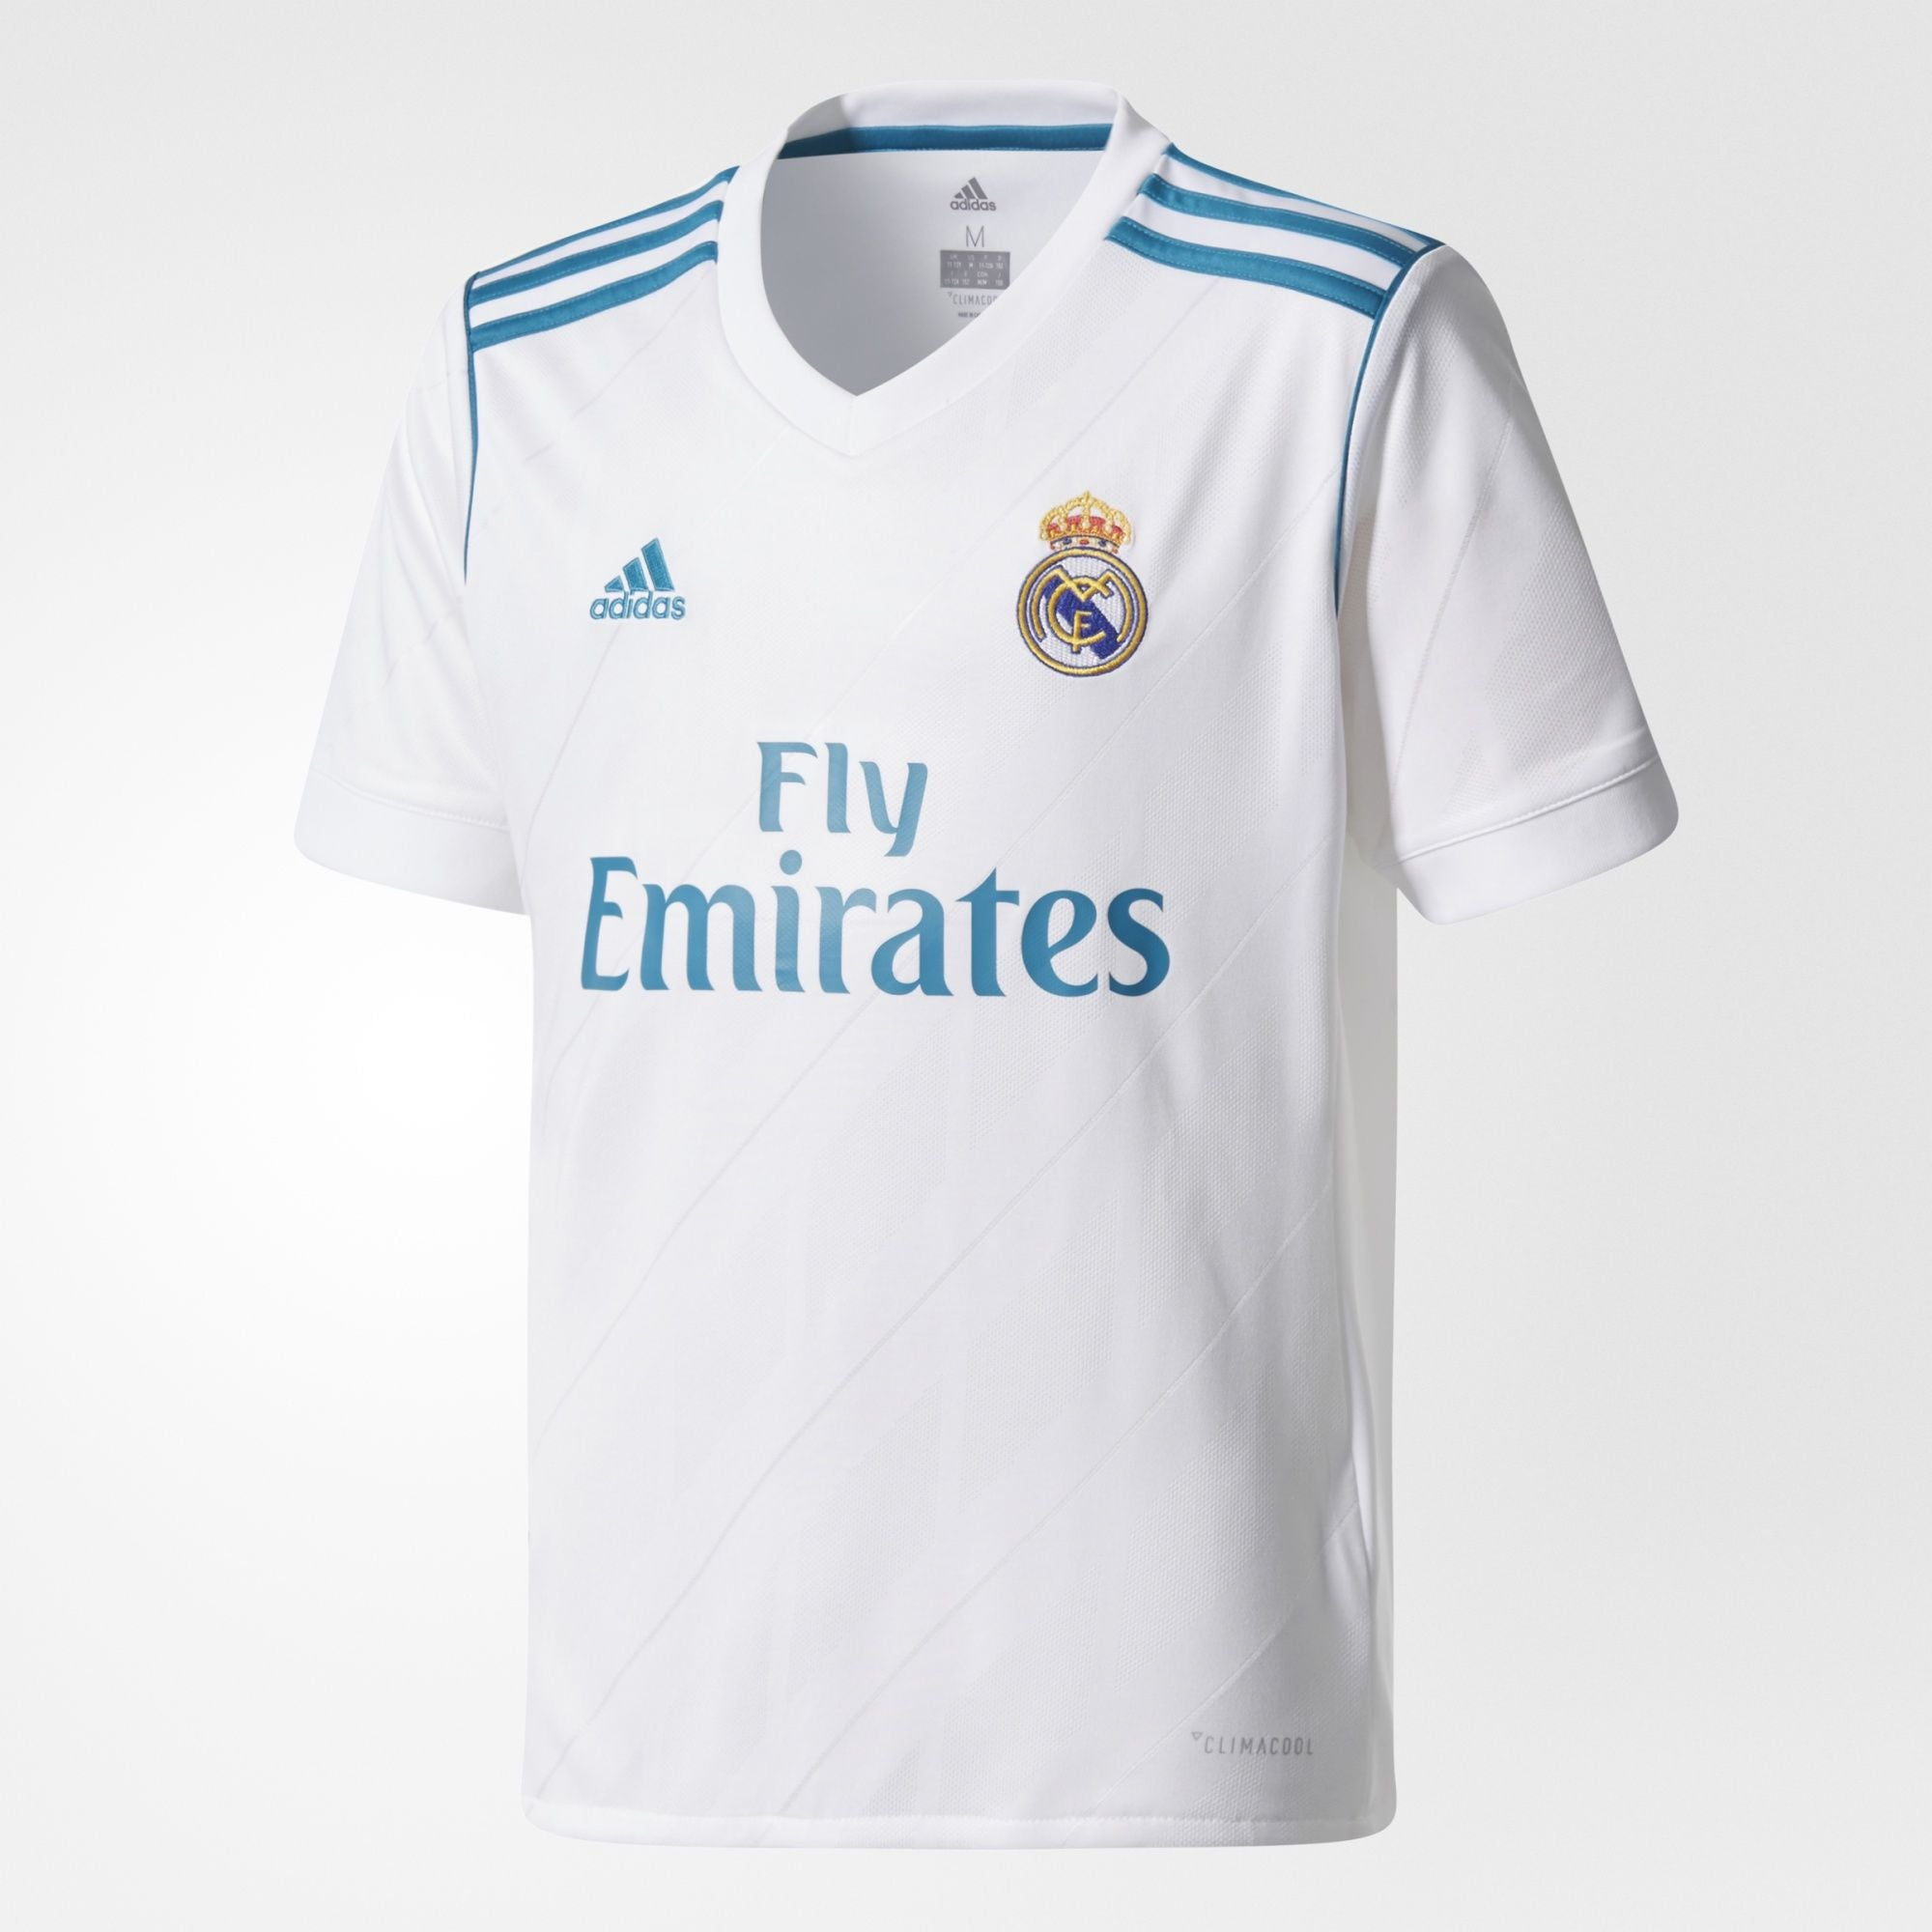 a393d7a1a Adidas - Adidas Youth Real Madrid 2017/18 Home Replica Jersey - La Liga  Soccer